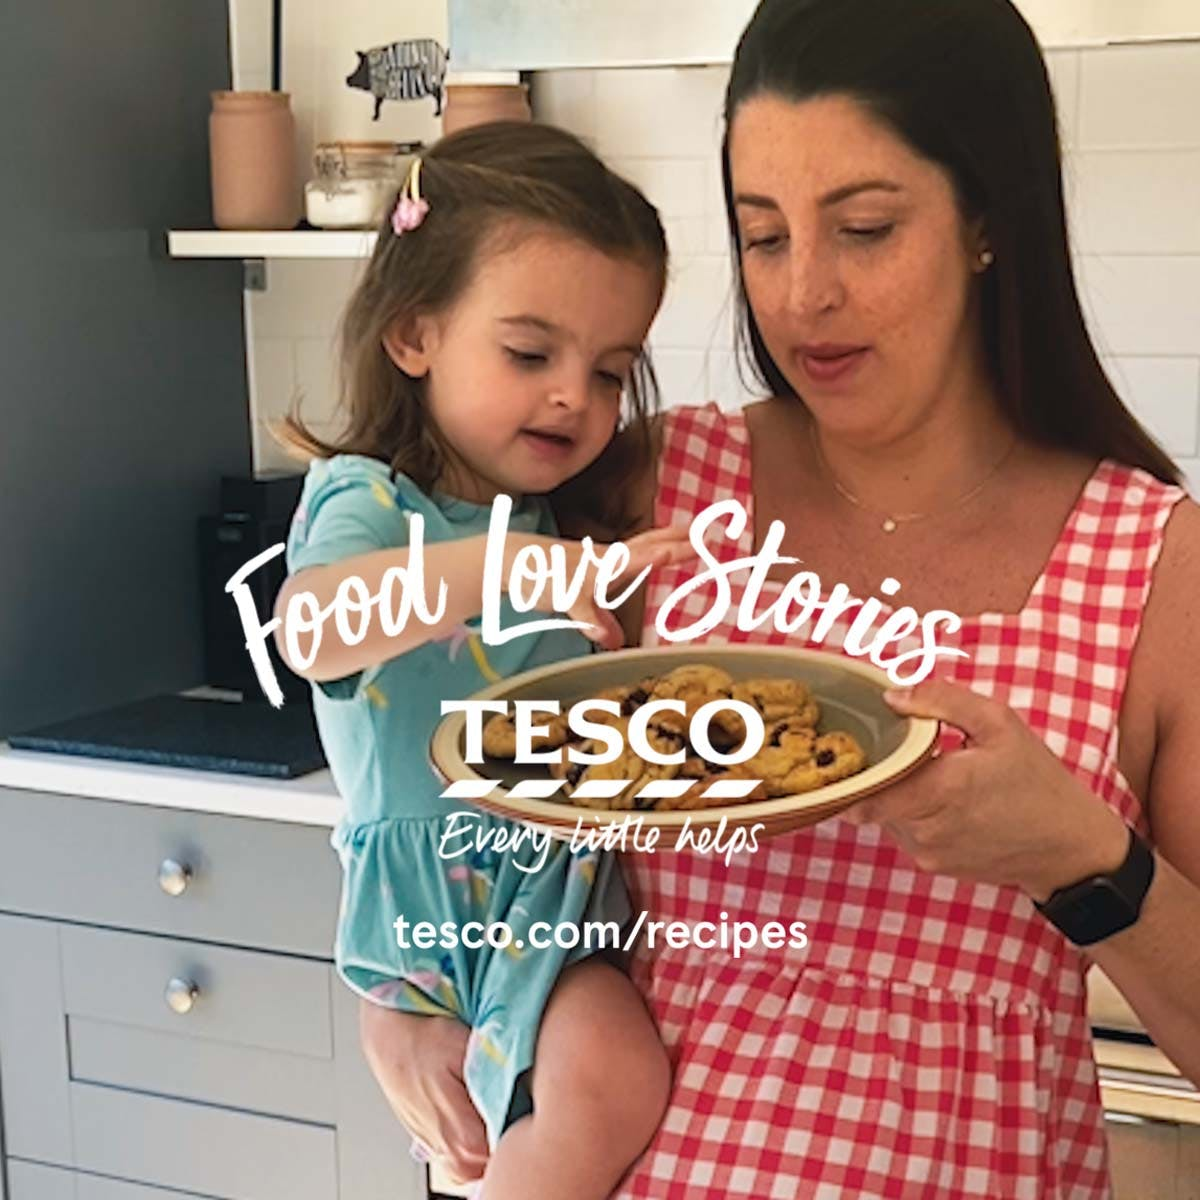 Tesco asks customers to take part in new Food Love Stories campaign